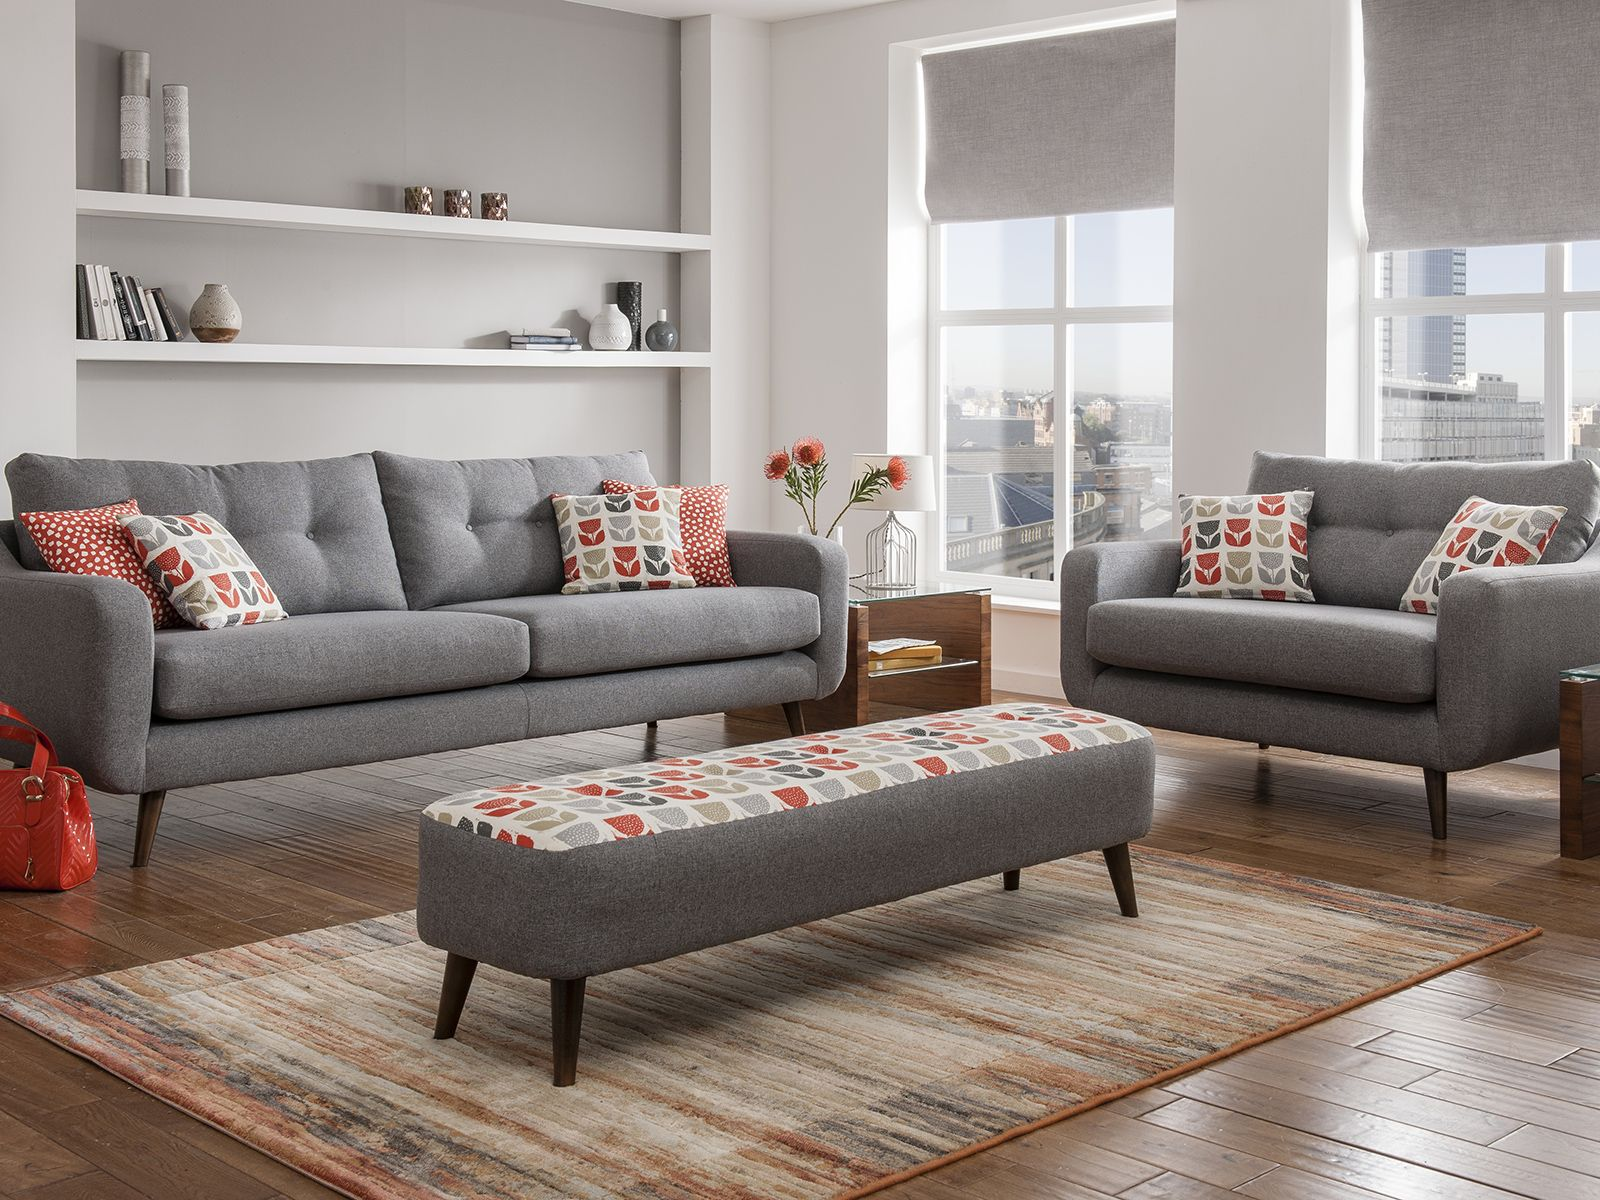 sofa retailers birmingham theater reclining sofas biba 3 seater type a retro pinterest